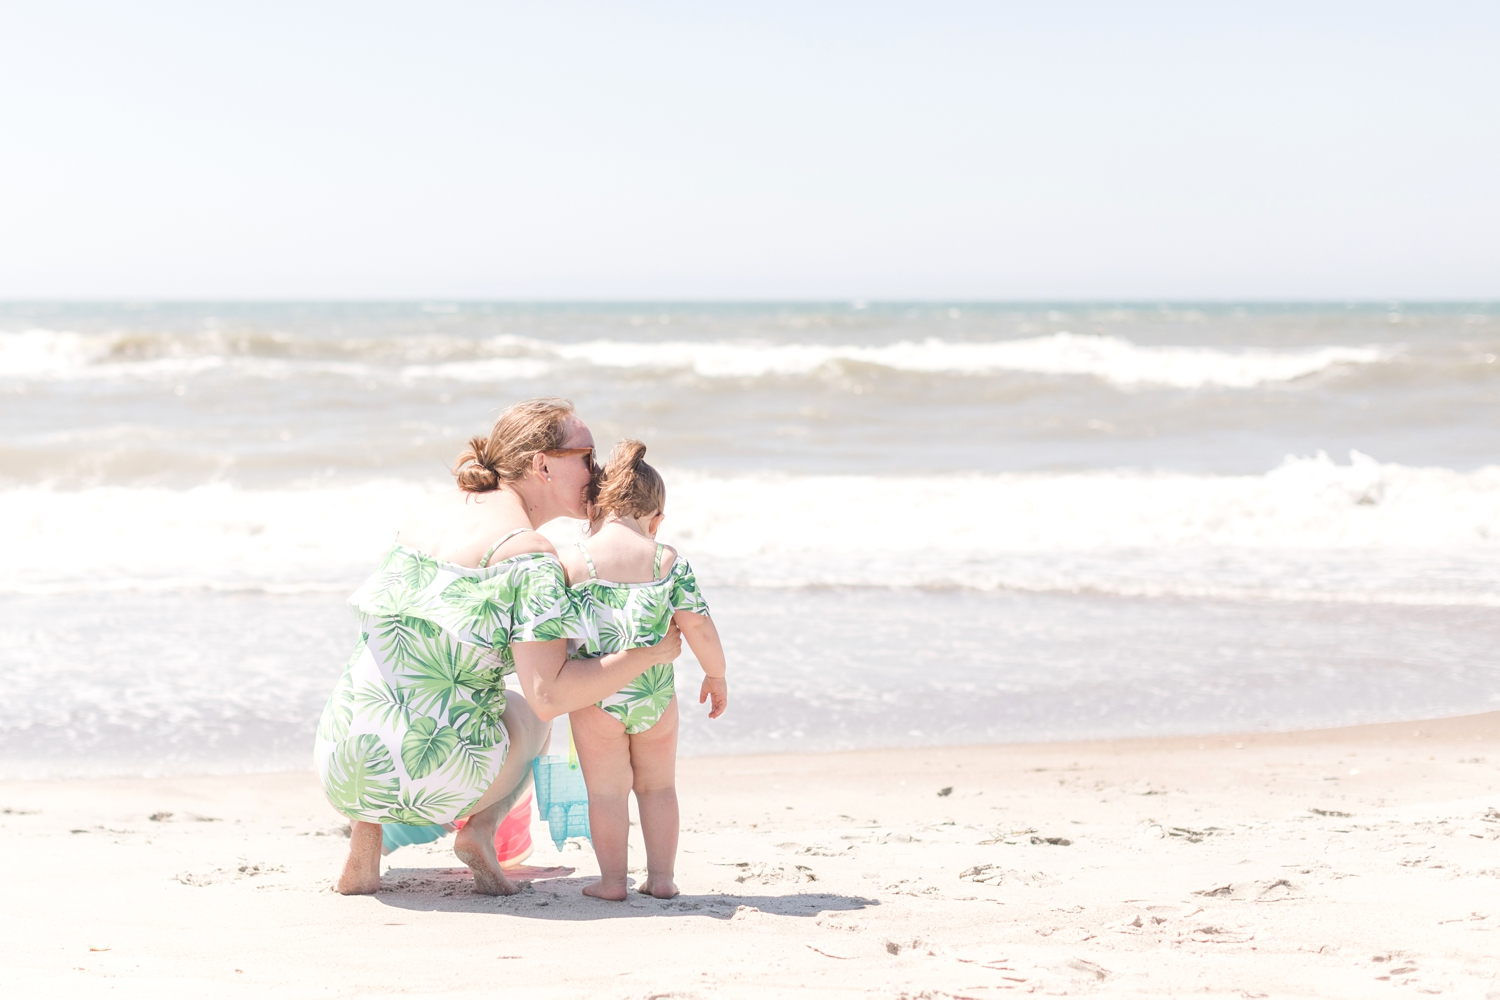 Emerald Isle Beach Trip 2019-20_Maryland-family-beach-photographer-anna-grace-photography-photo.jpg